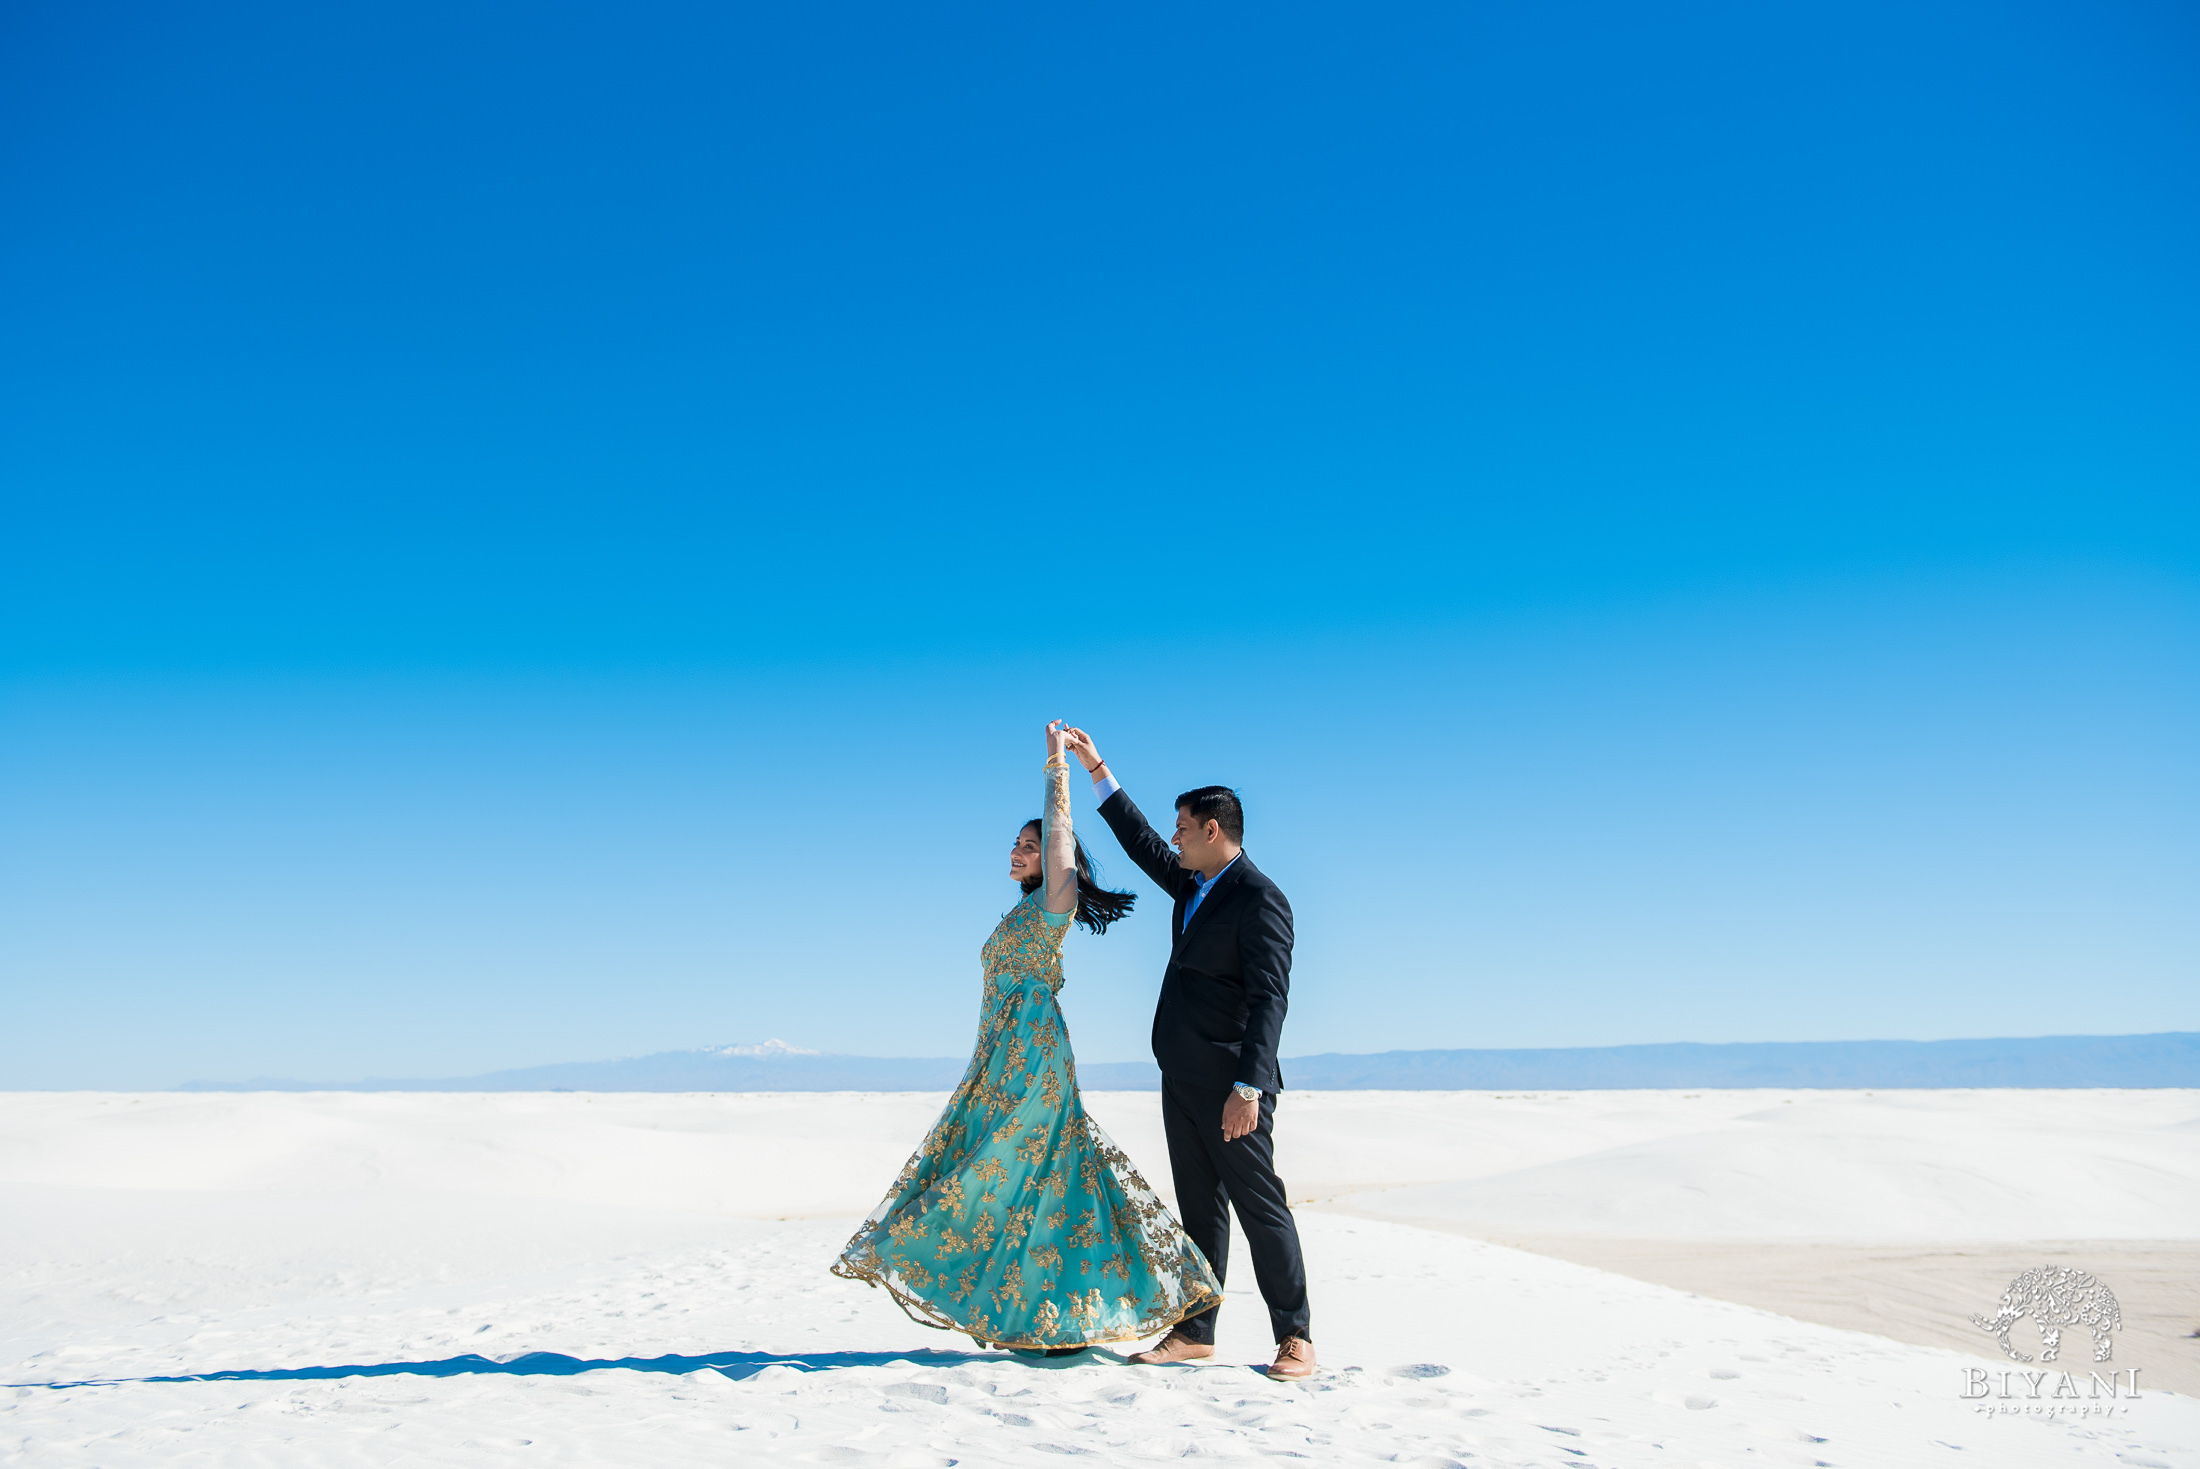 Groom to be twirls bride during sunny day in the sand dunes while dressed in traditional Indian dress